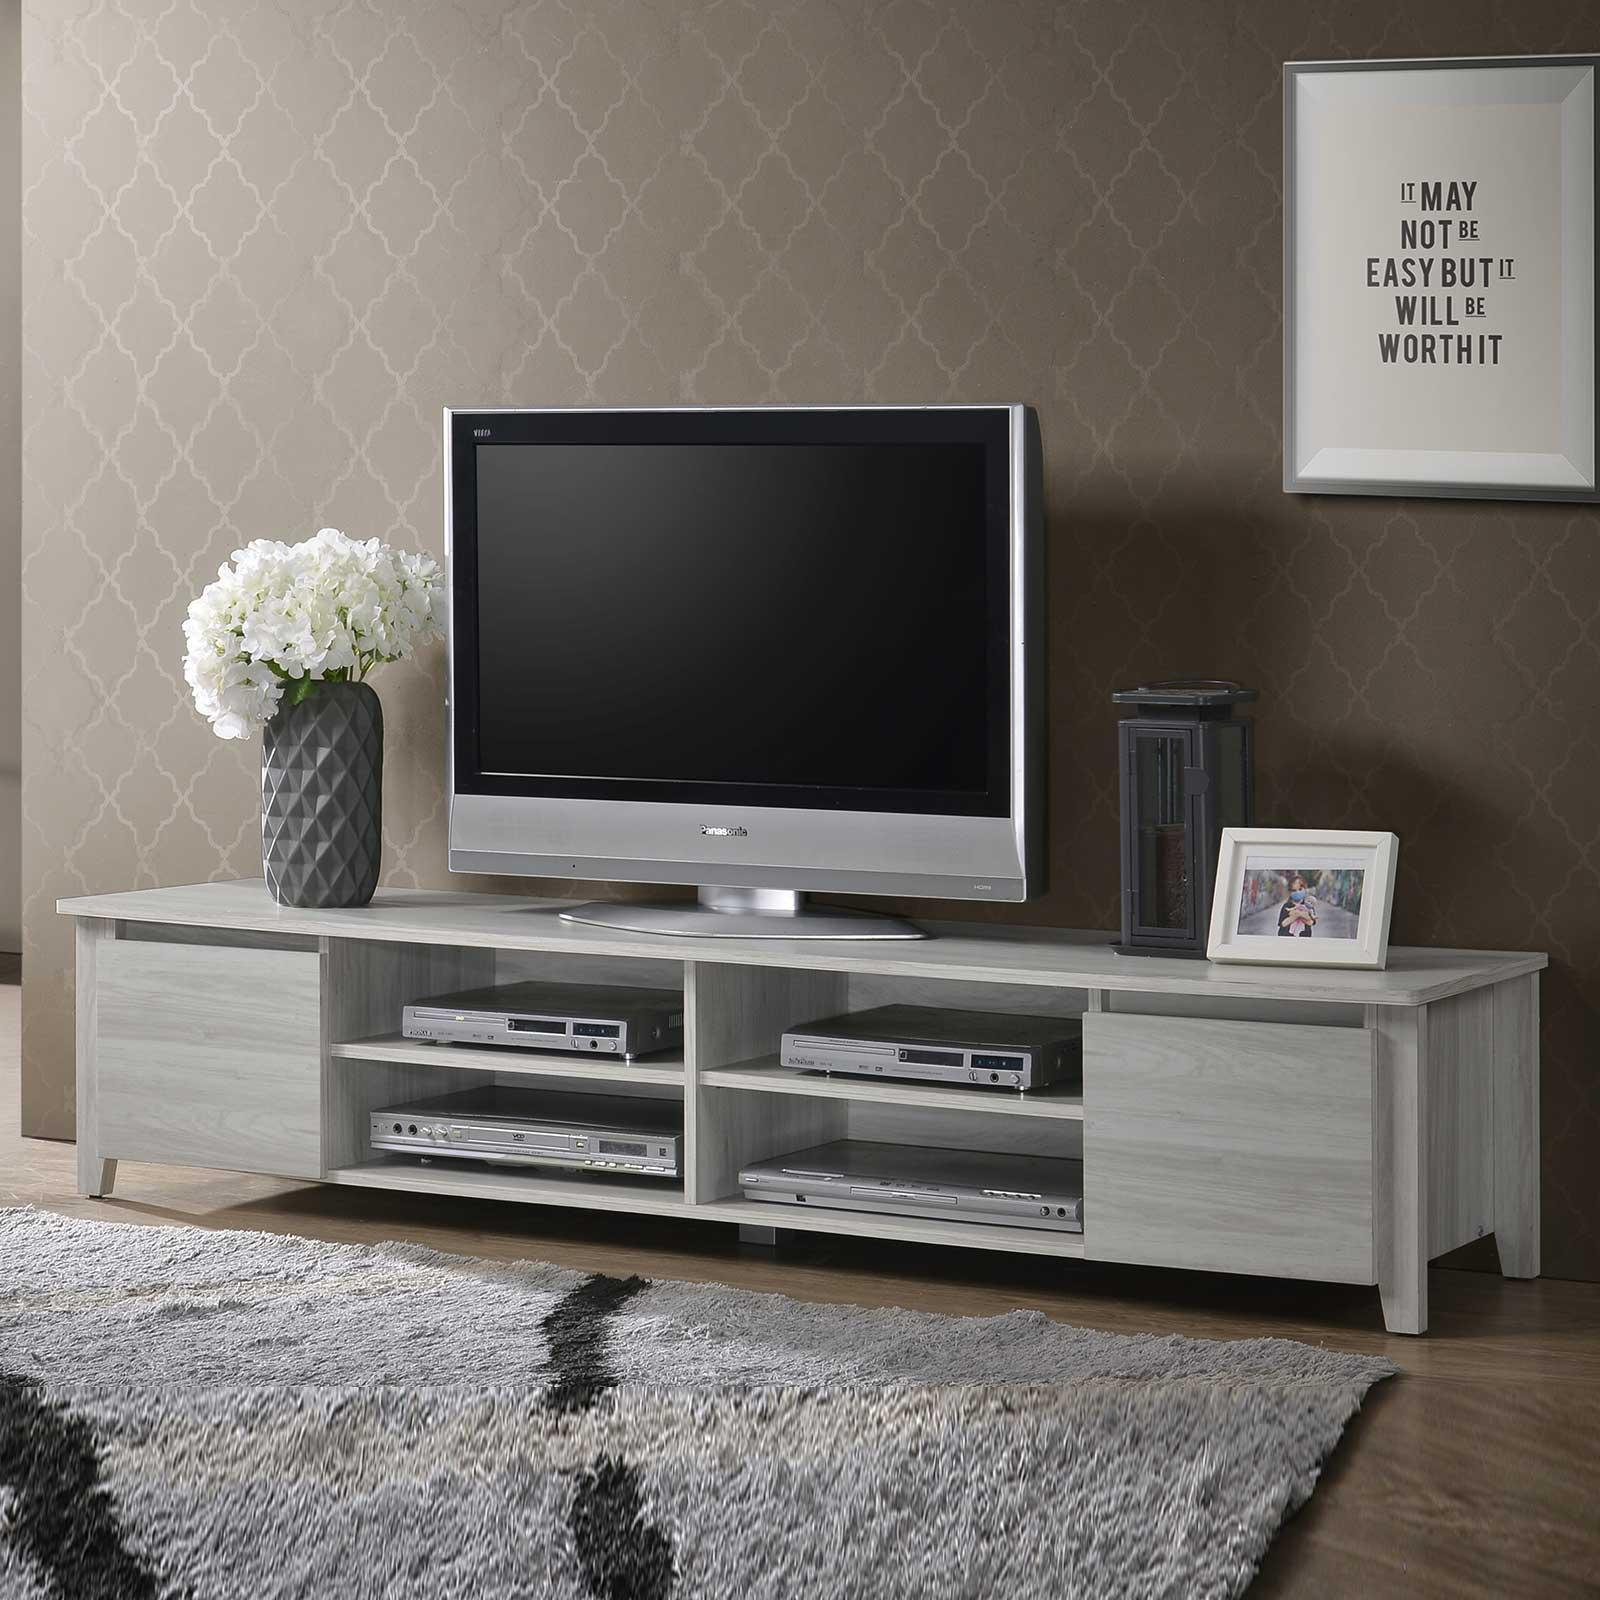 TV Console - 6ft / 1.8m in White Oak Cabinet Shelves Stand Entertainment Unit⭐ E-LIVING Furniture